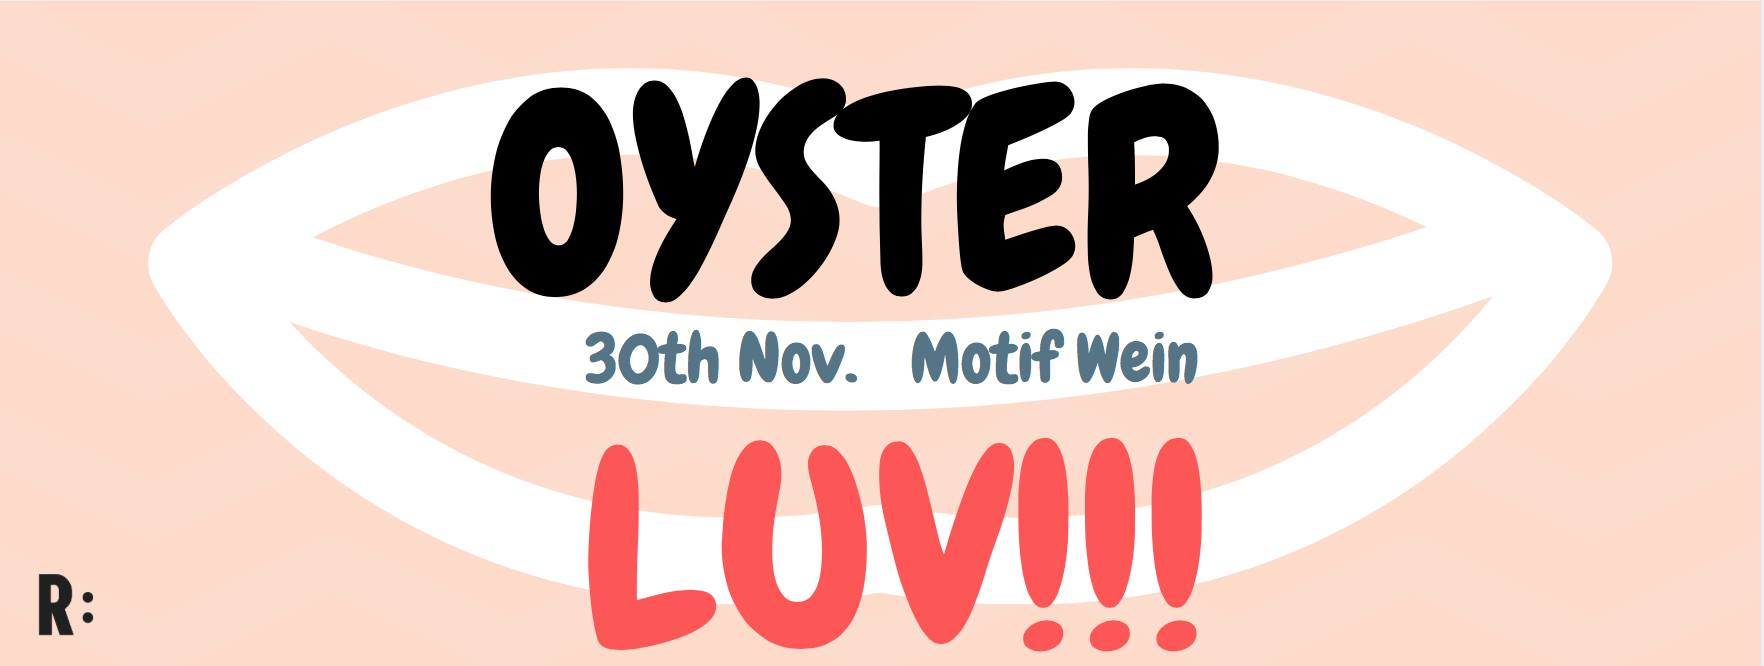 Oyster Luv Motif Wine Berlin